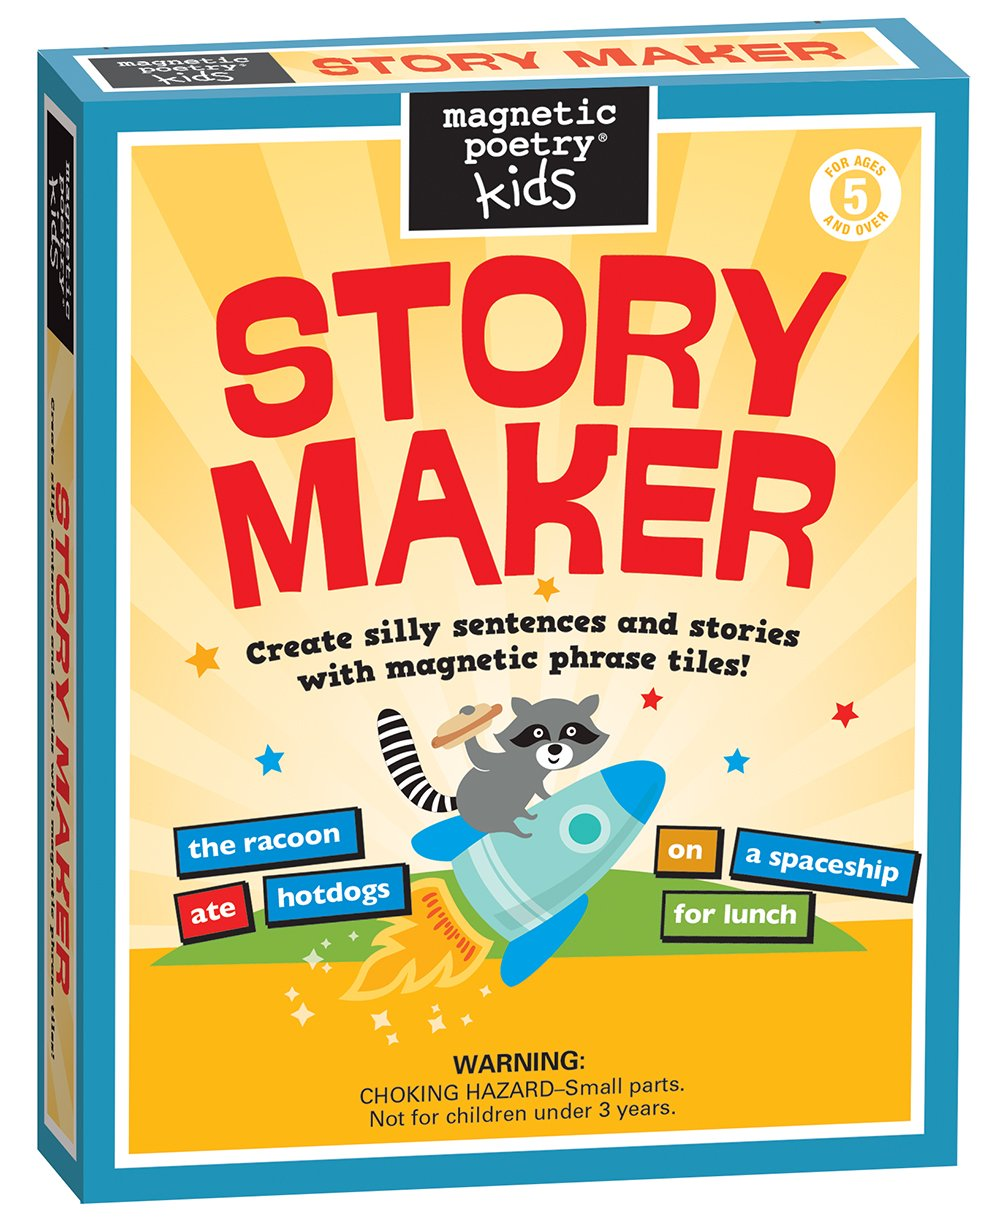 Magnetic Poetry - Kids Story Maker Kit - Ages 5 and Up - Words for Refrigerator - Write Poems and Letters on the Fridge - Made in the USA by Magnetic Poetry